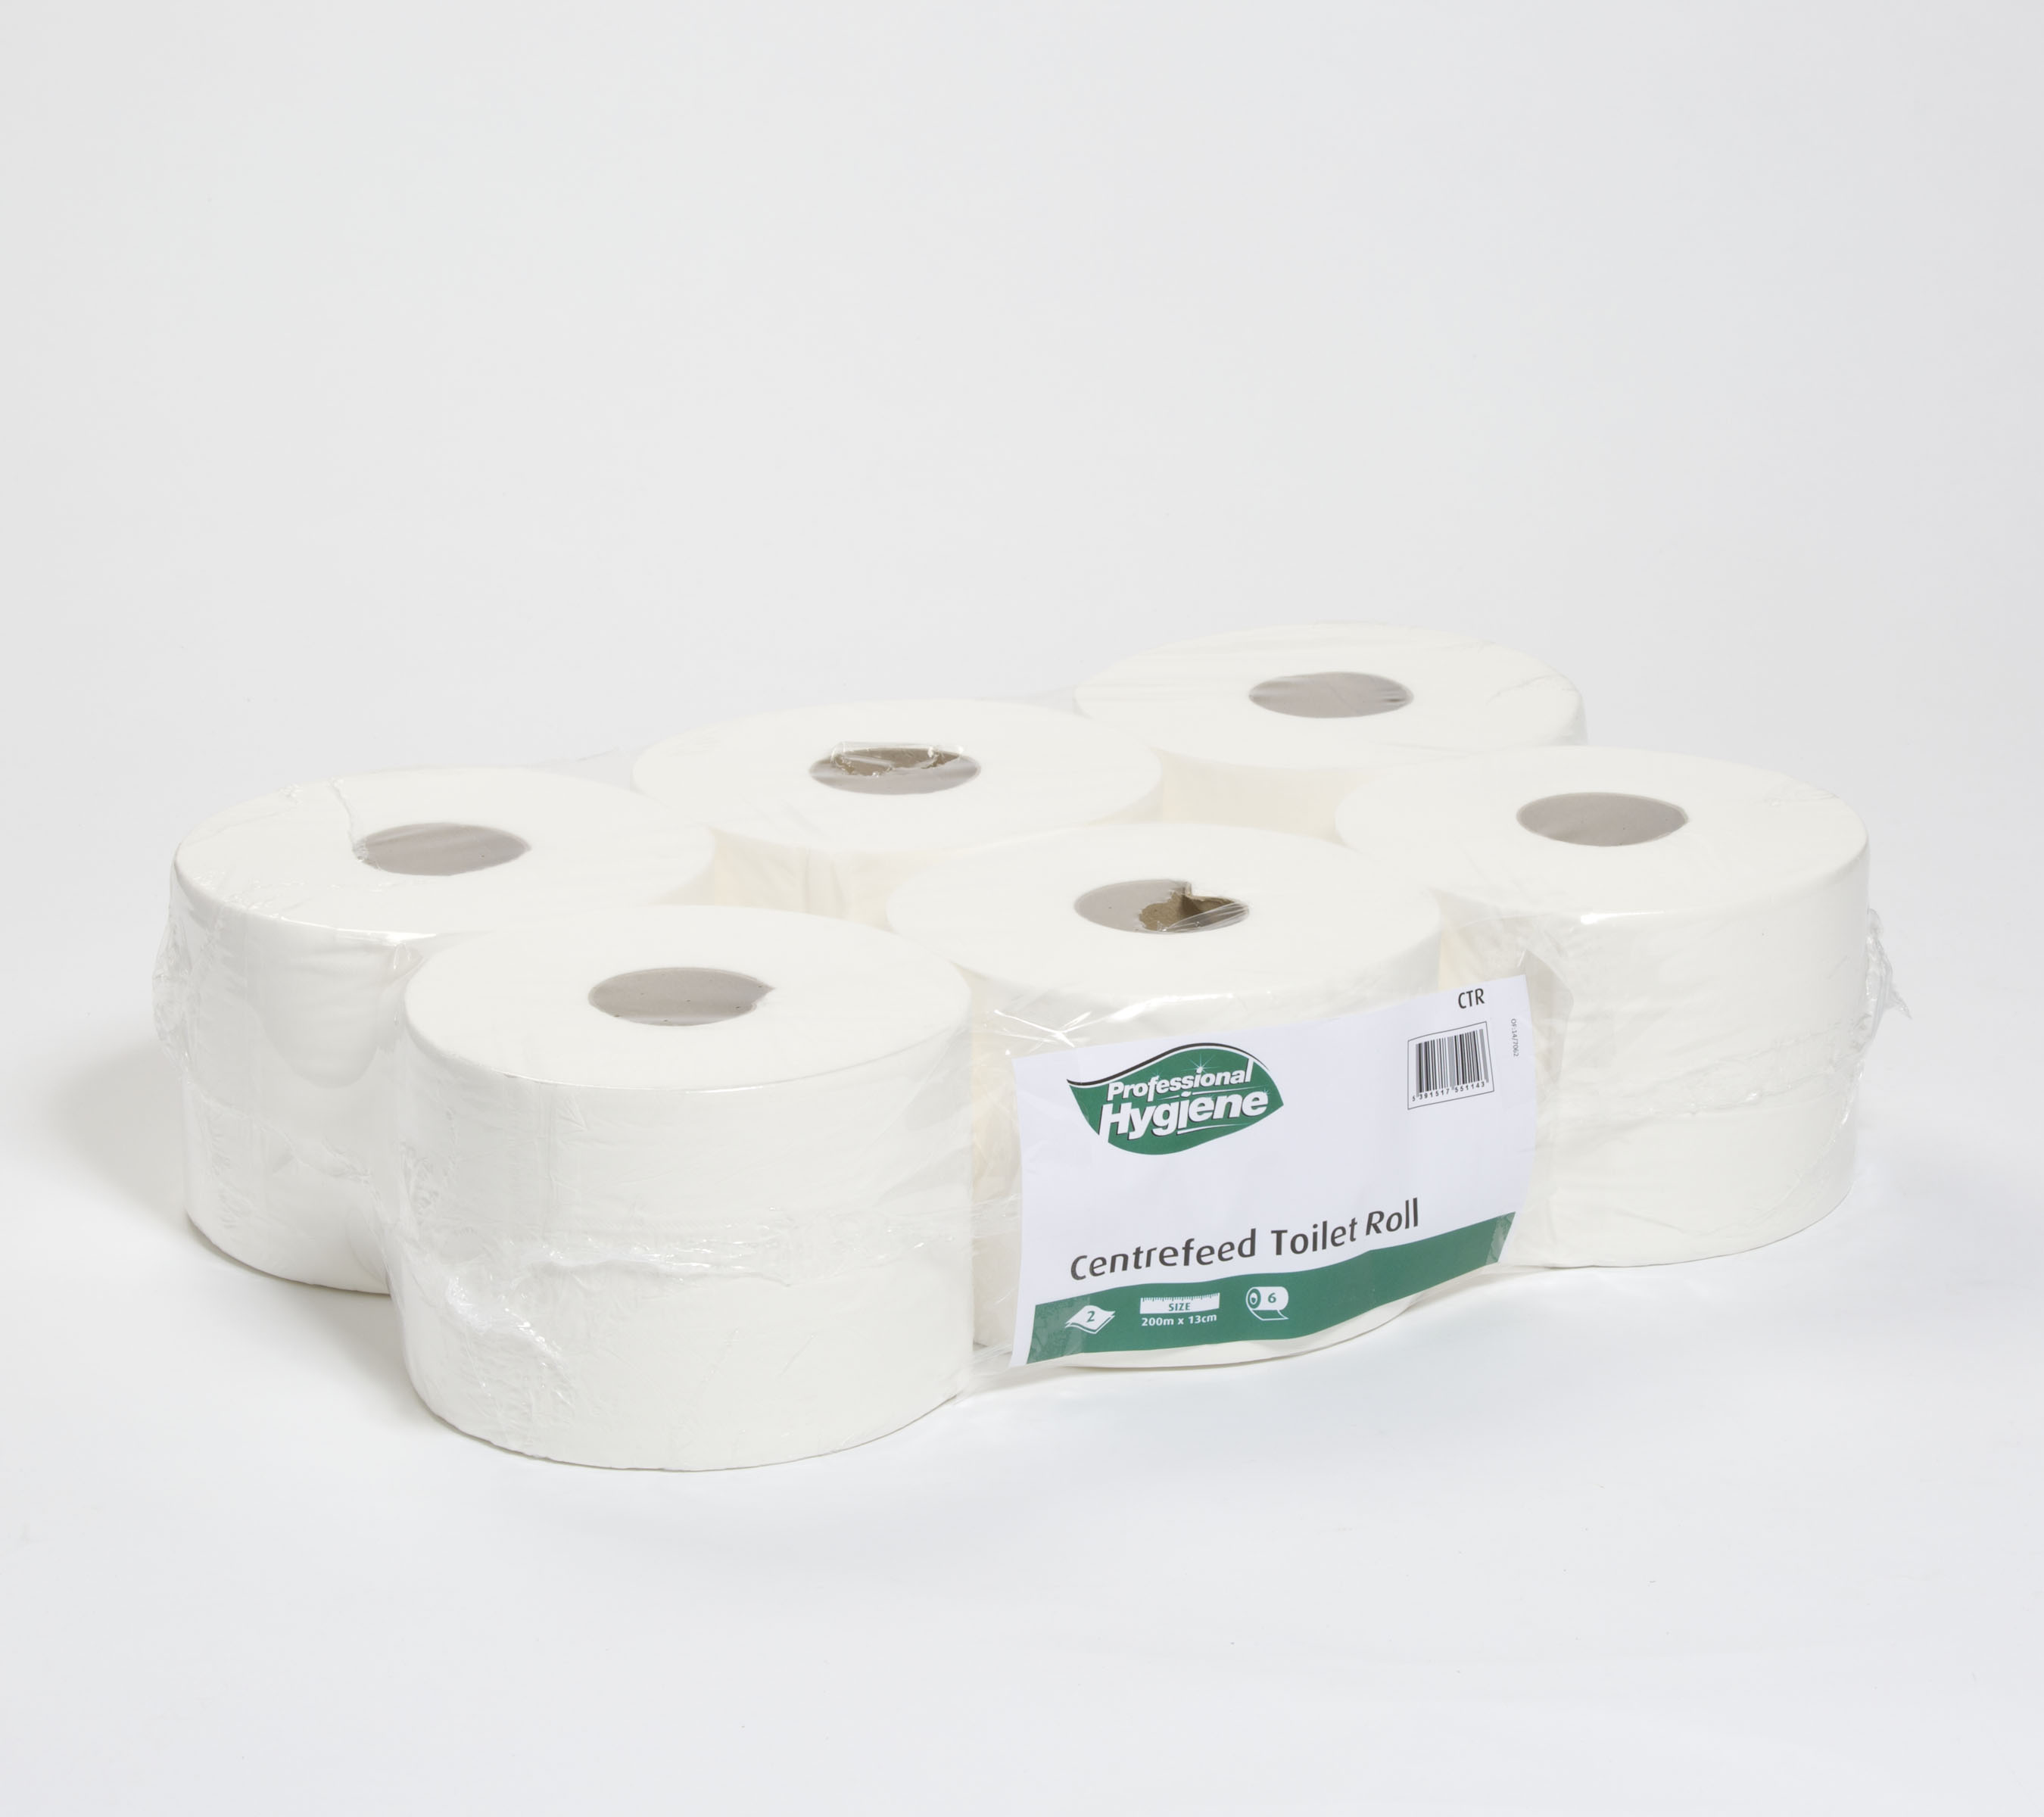 CENTREFEED TOILET ROLL 2 PLY - 200M x 13cm image